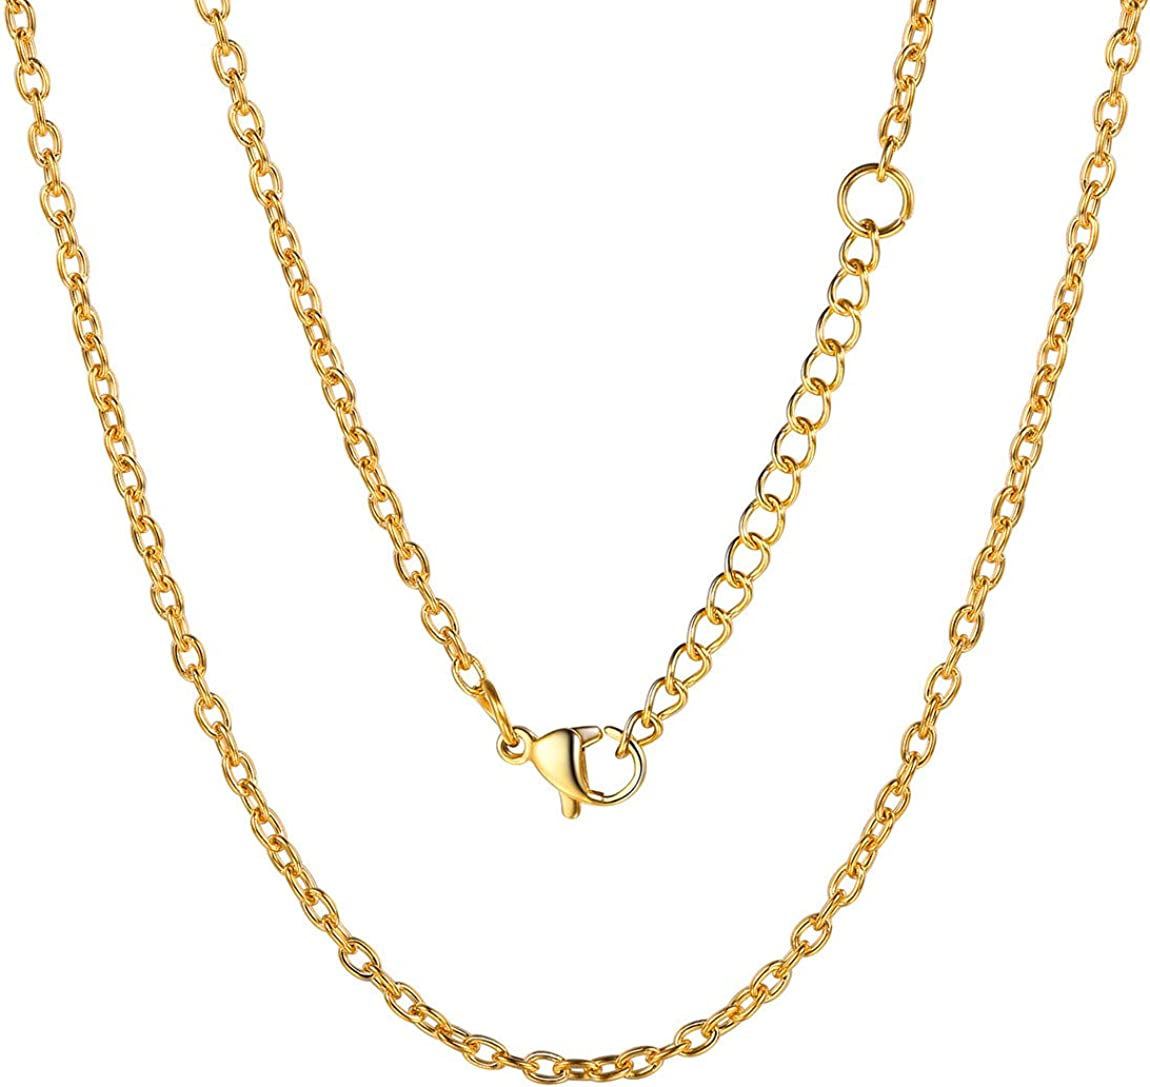 """ChainsPro Women 1.2mm Slim Snake Chain, Replacement Necklace, 18-30"""" Length, 18K Gold/Rose Gold Plated (Send Gift Box)"""